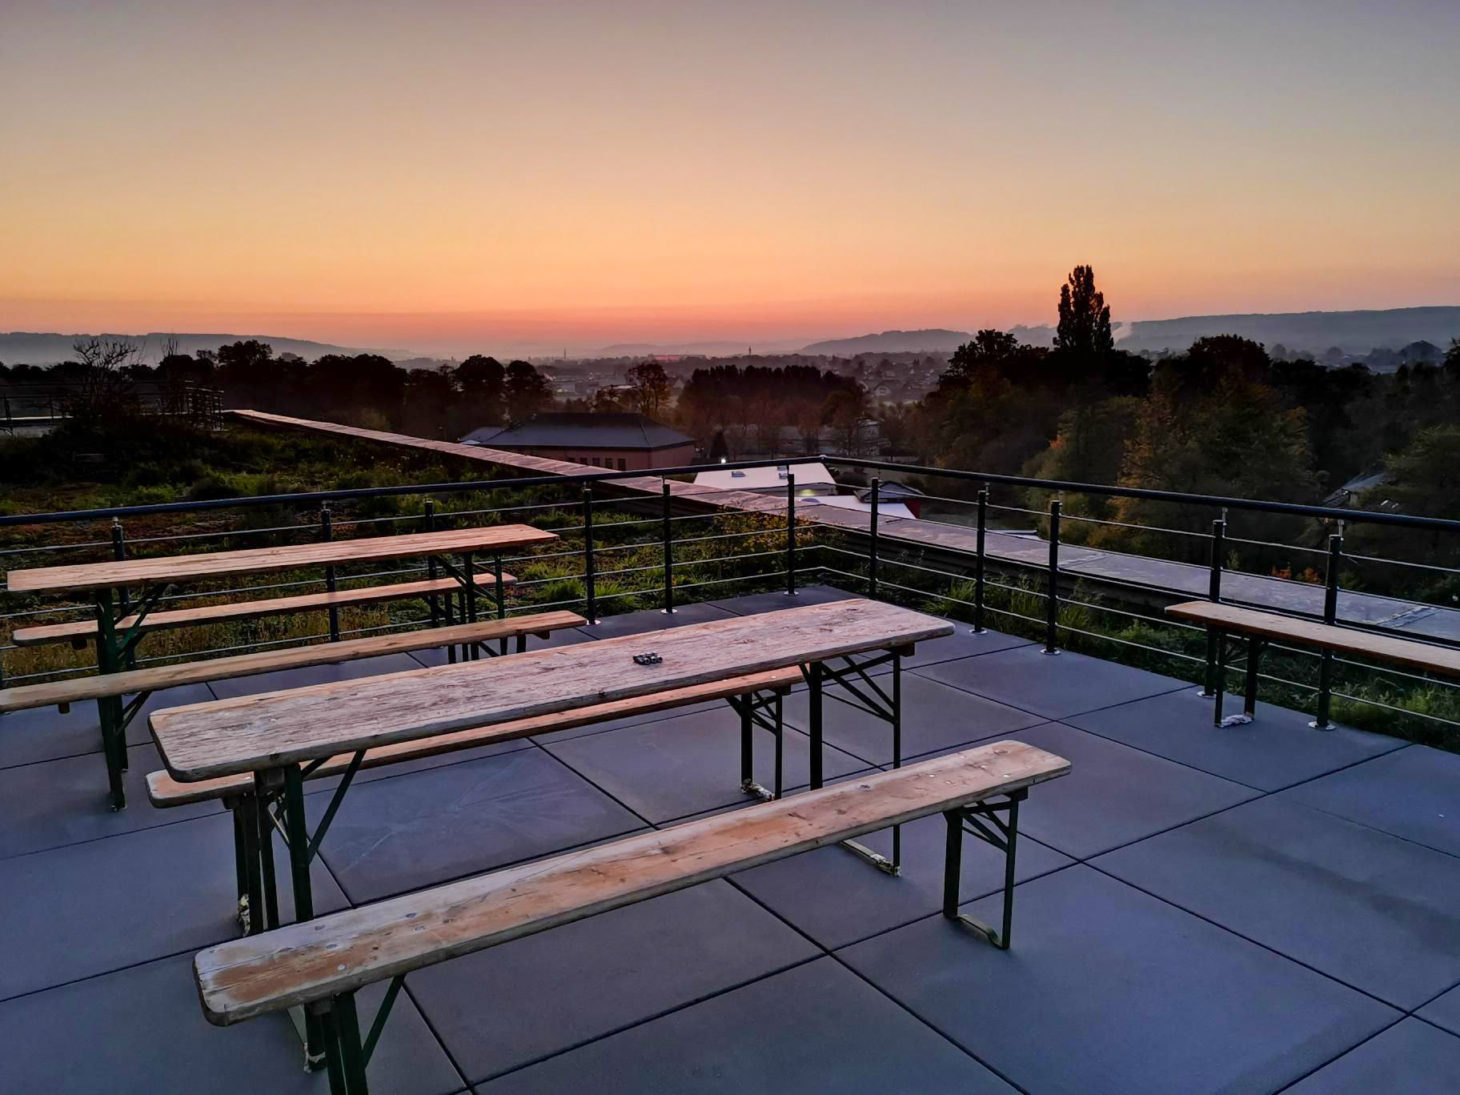 Image of a roof terrace at sunset, valantic branch Siegburg